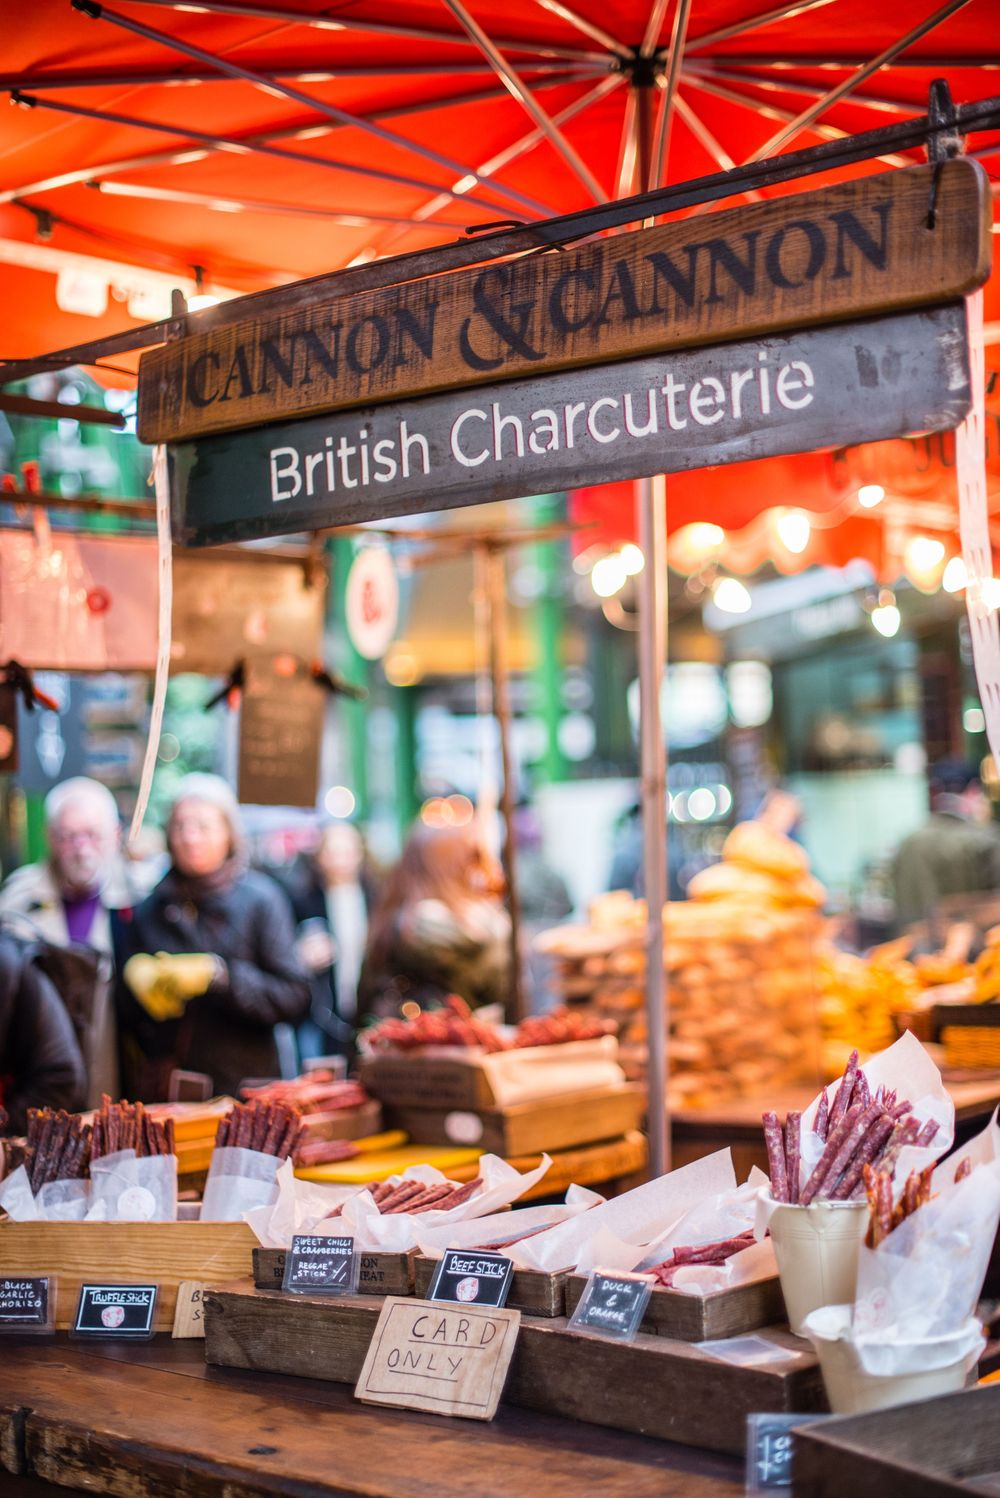 British Charcuterie display at Borough Market, London